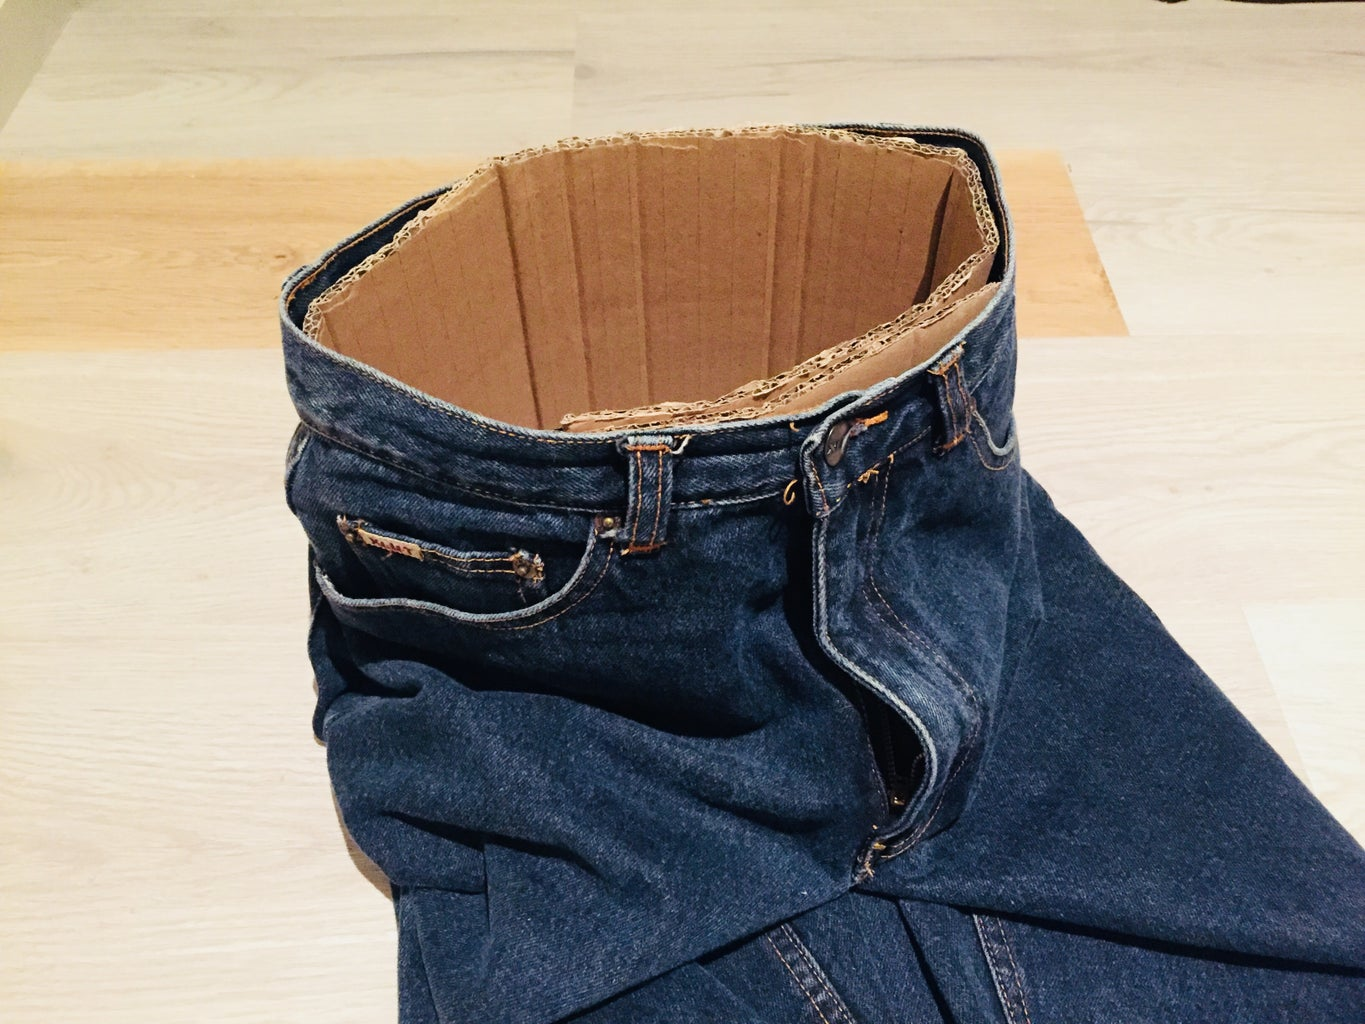 Making the Base of the Waist